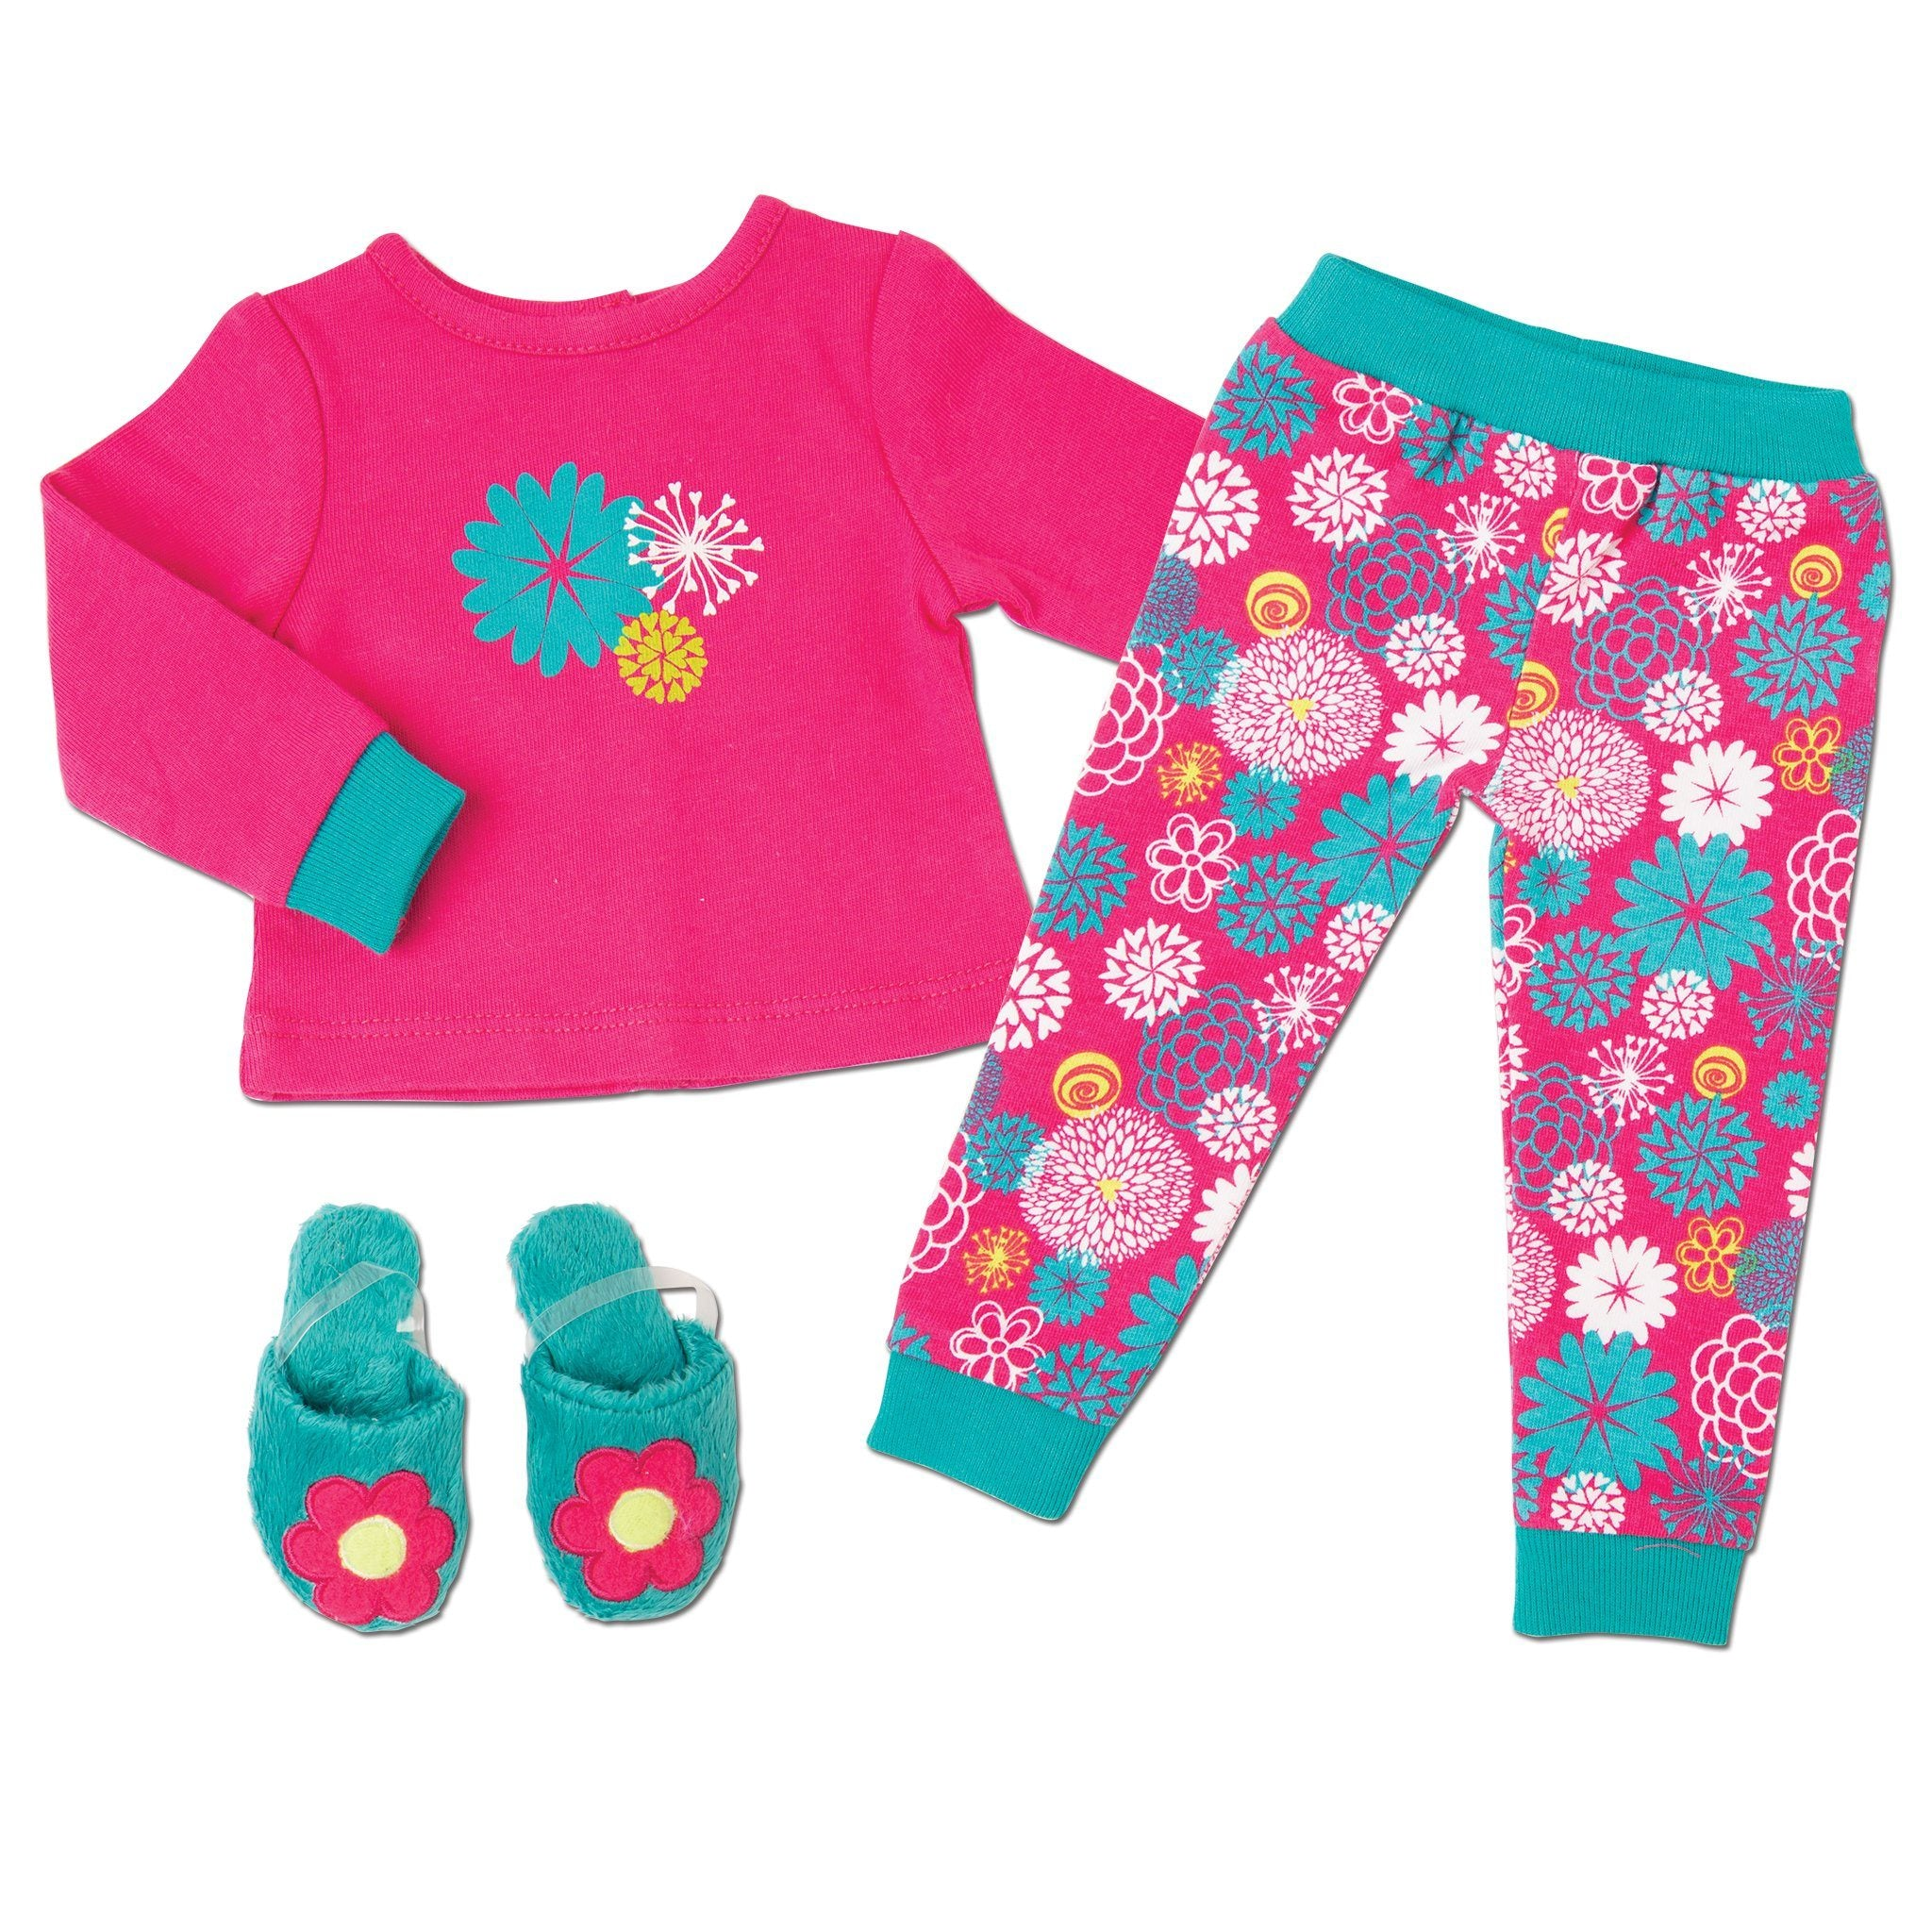 Pajamas for 18 inch doll.  Pajama top, bottoms and slippers.